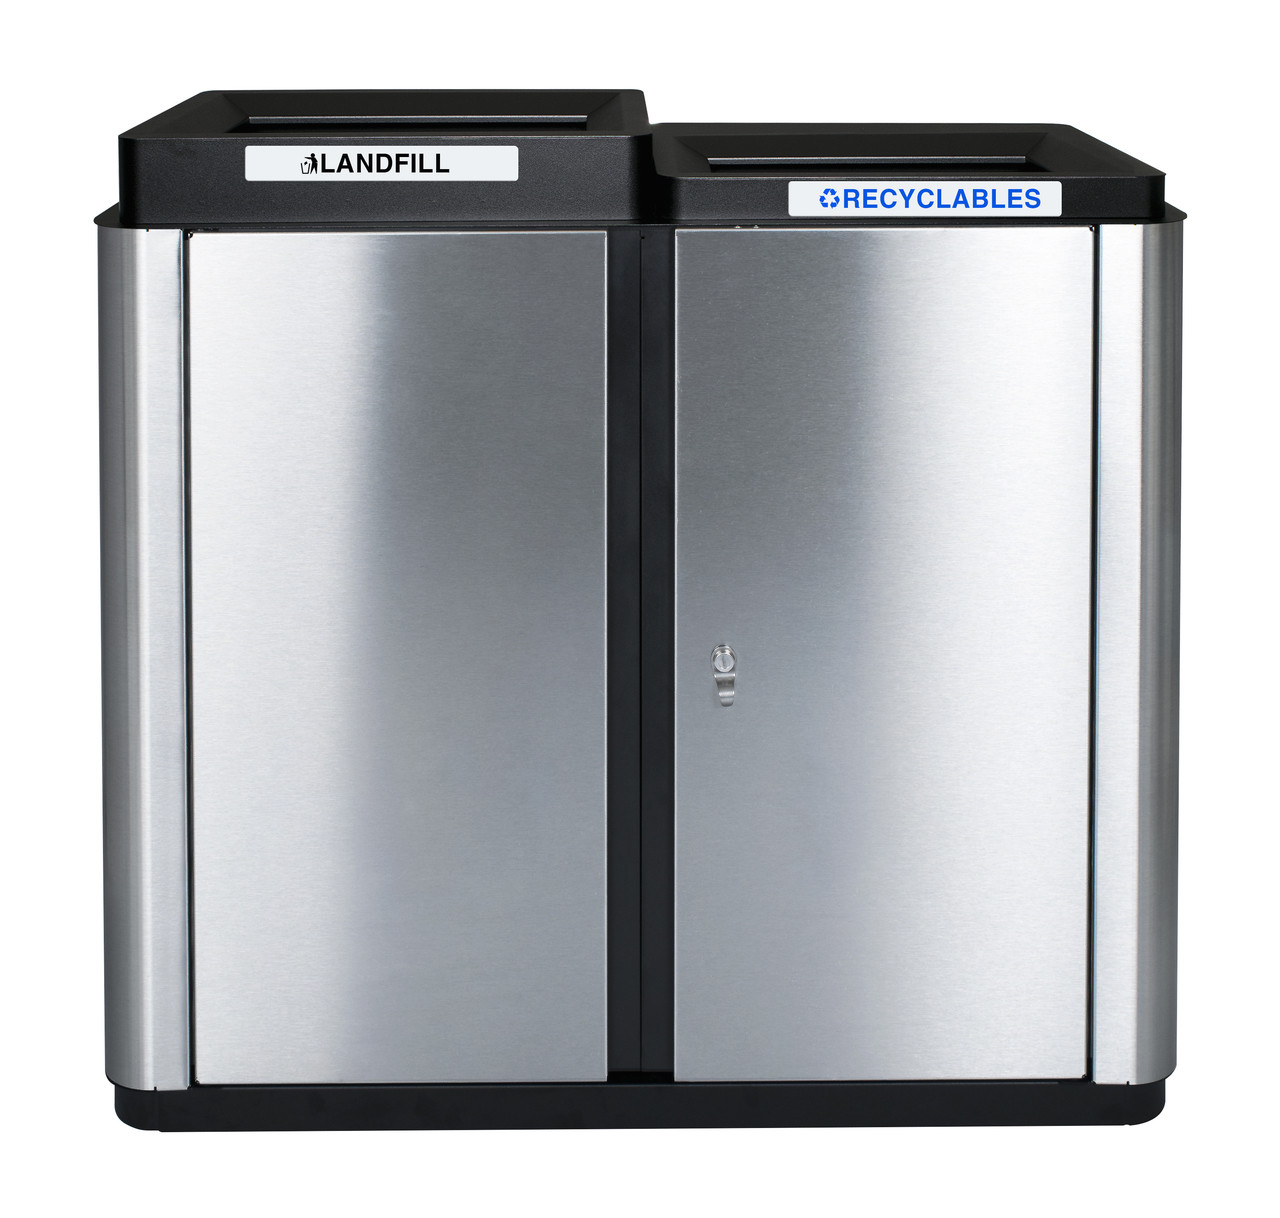 70 Gallon Echelon Collection Indoor Two Stream Recycling Receptacle (2 Waste Openings)